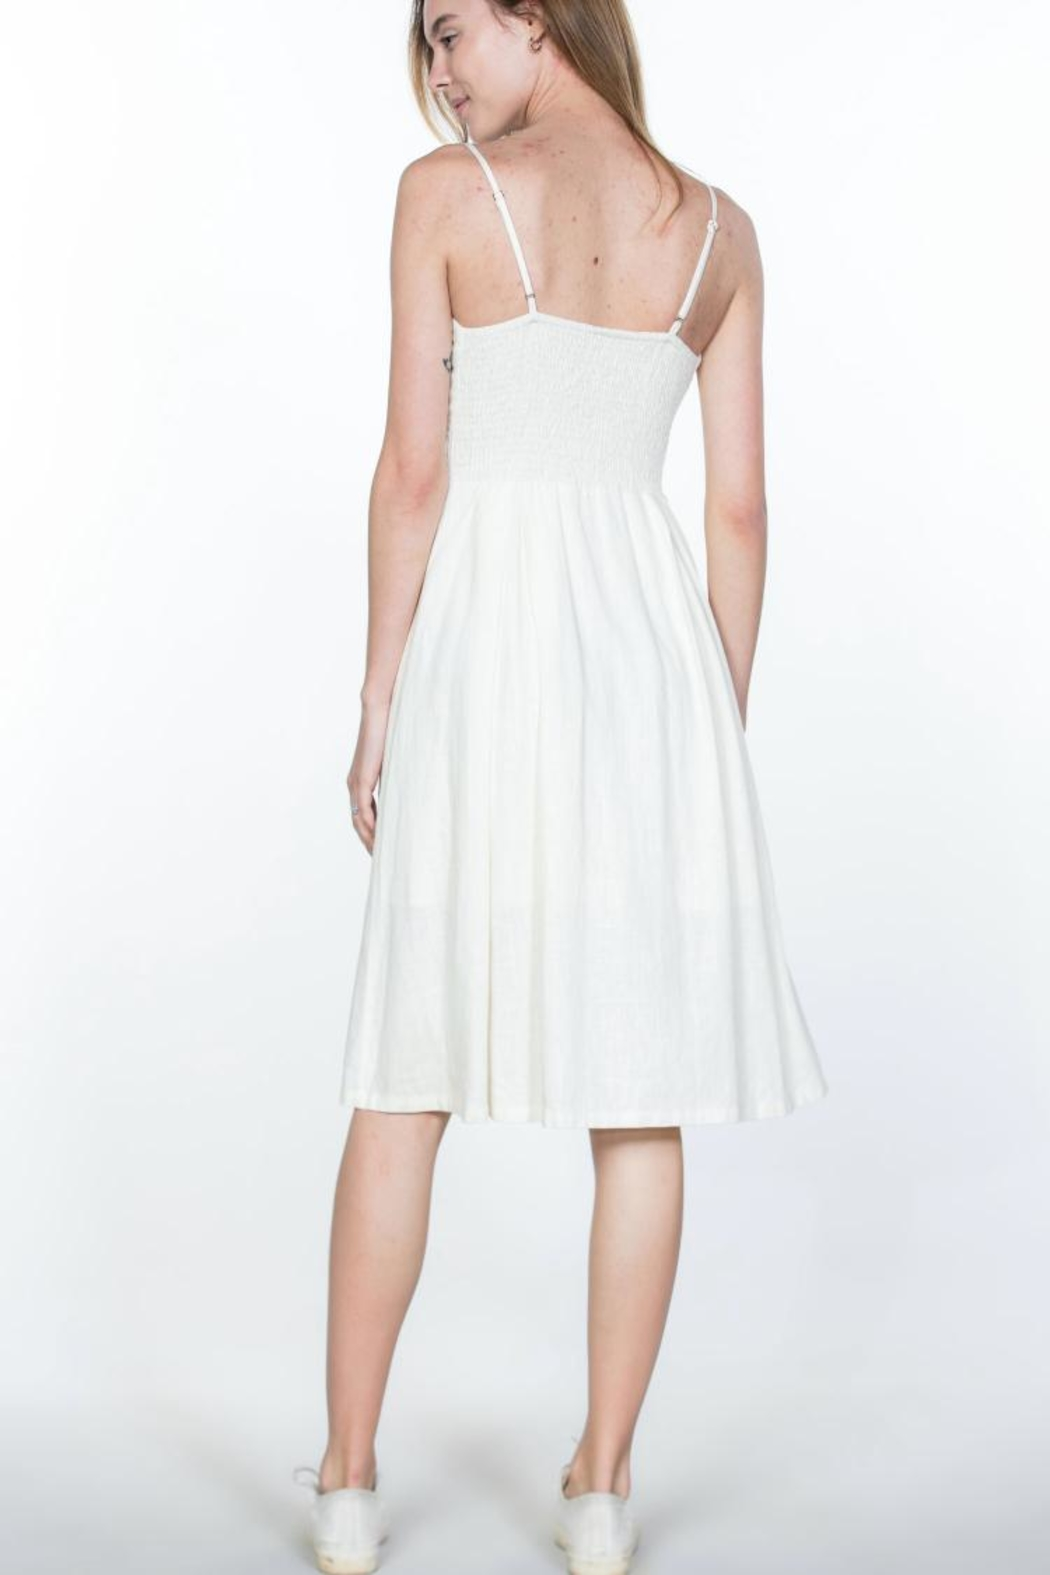 Ark & Co. Button-Up Cami Dress - Back Cropped Image